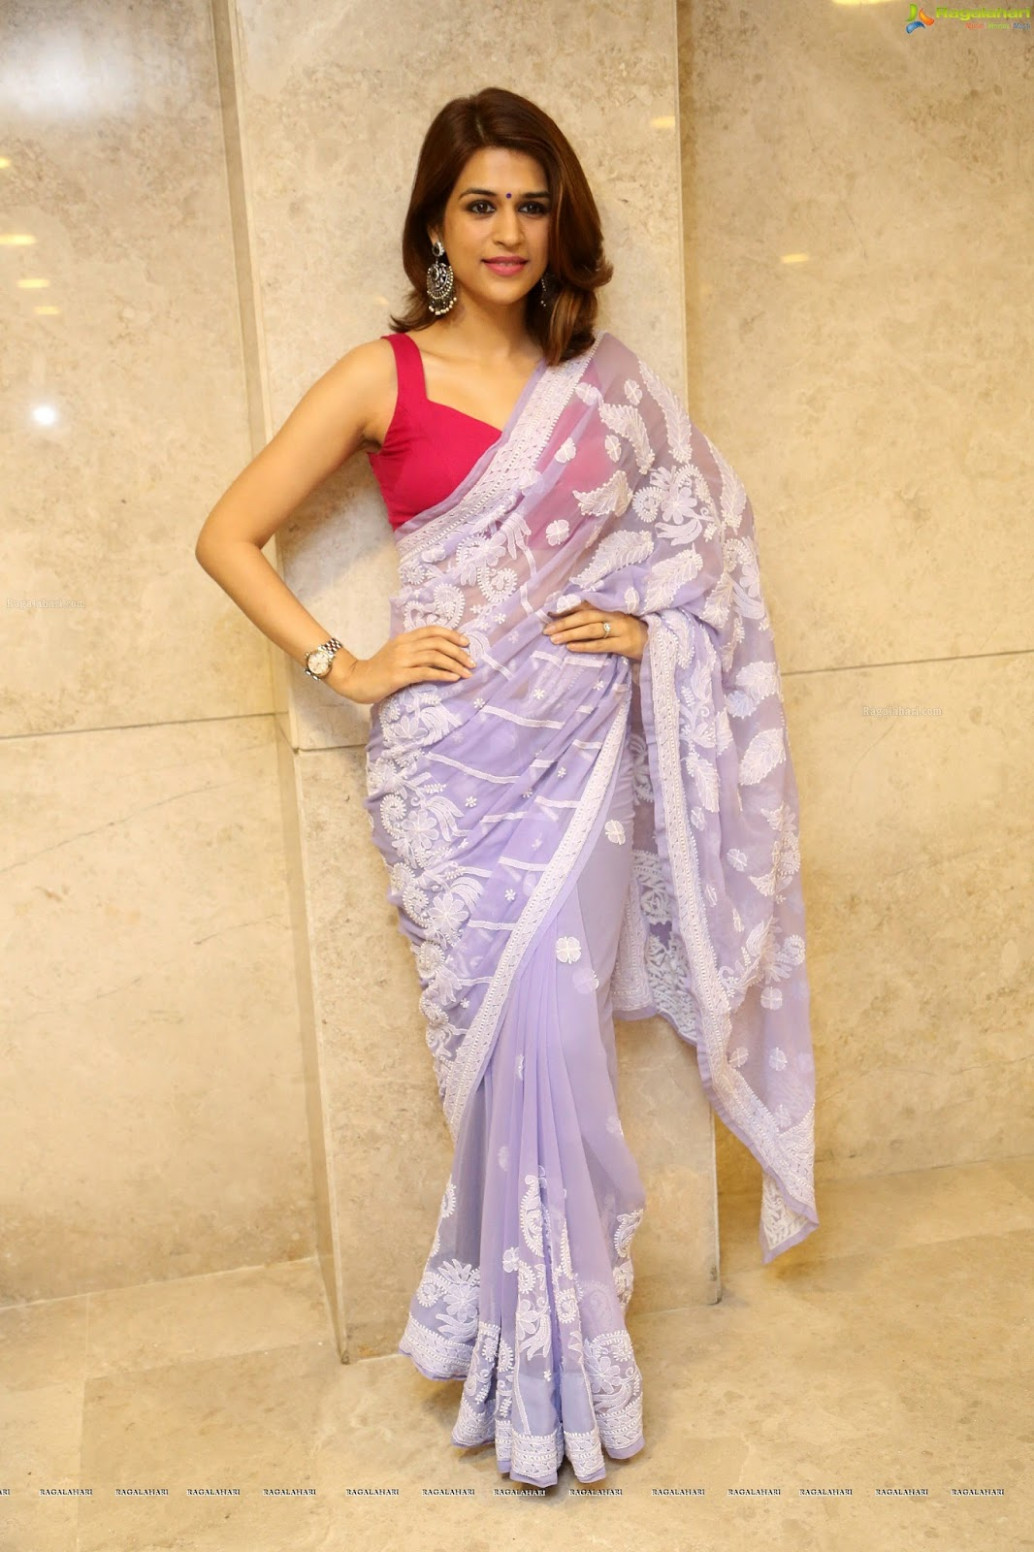 Saree Seduction: Shraddha Das in backless pink blouse and